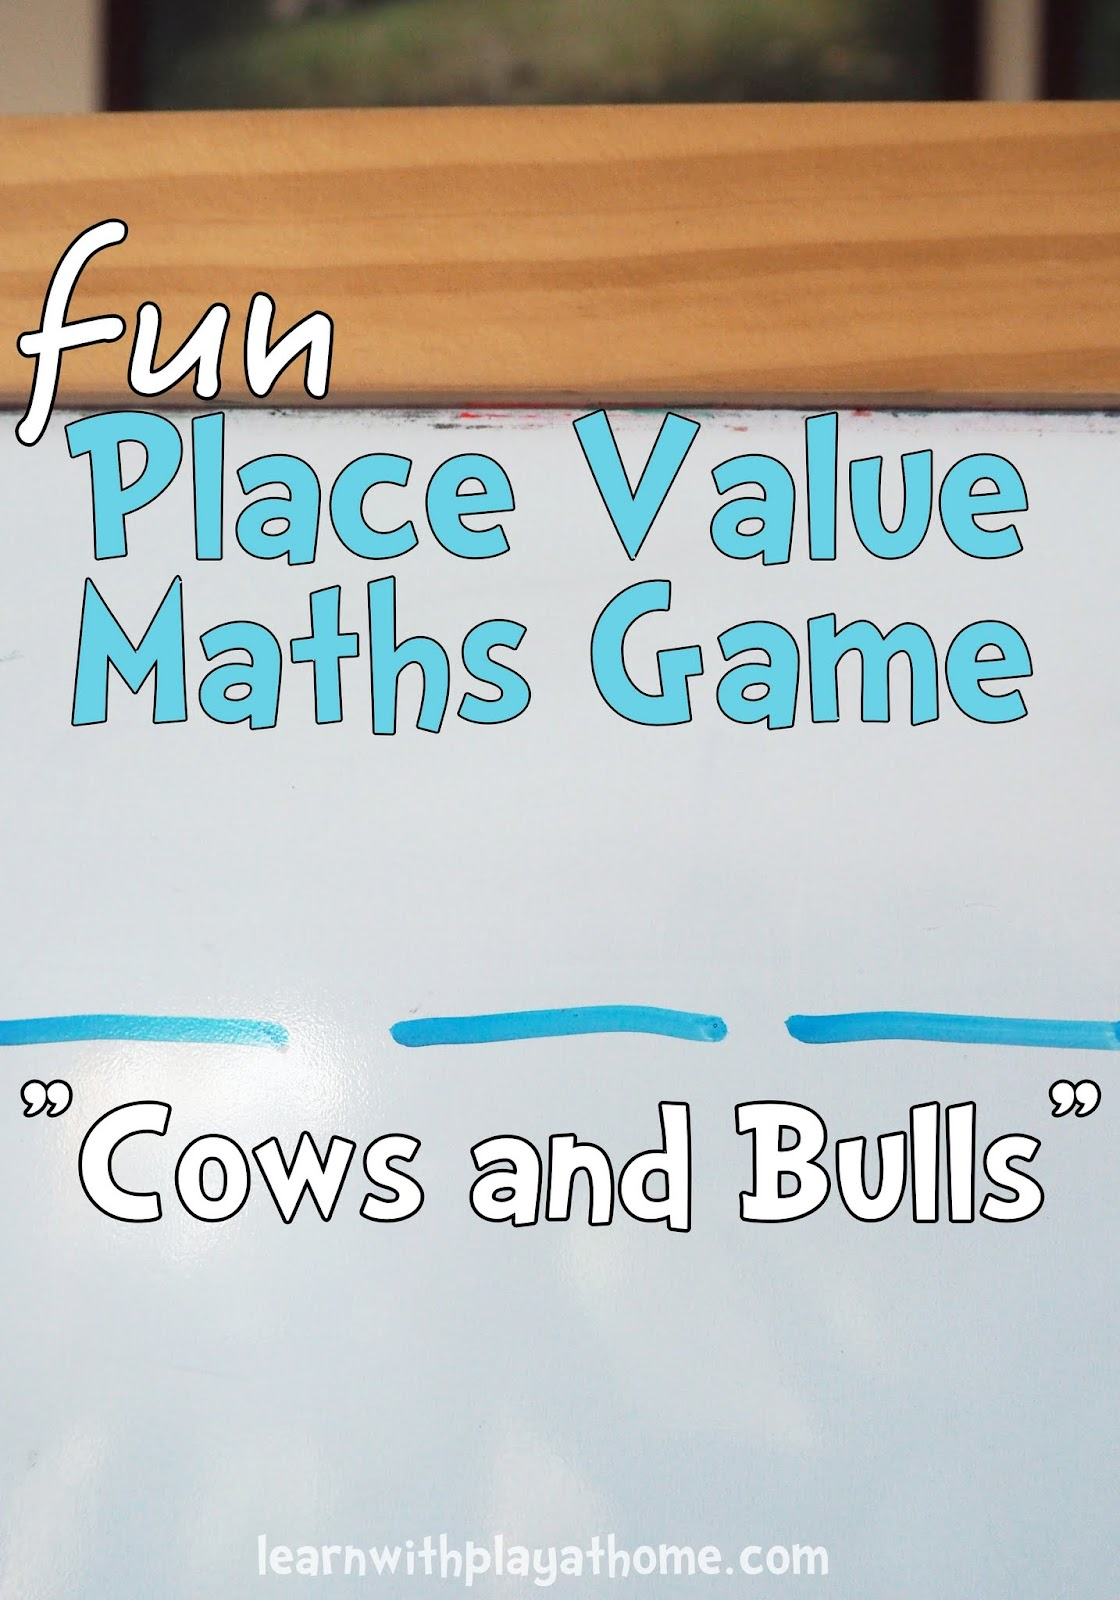 Learn with Play at Home: Place Value Maths Game. Cows and Bulls